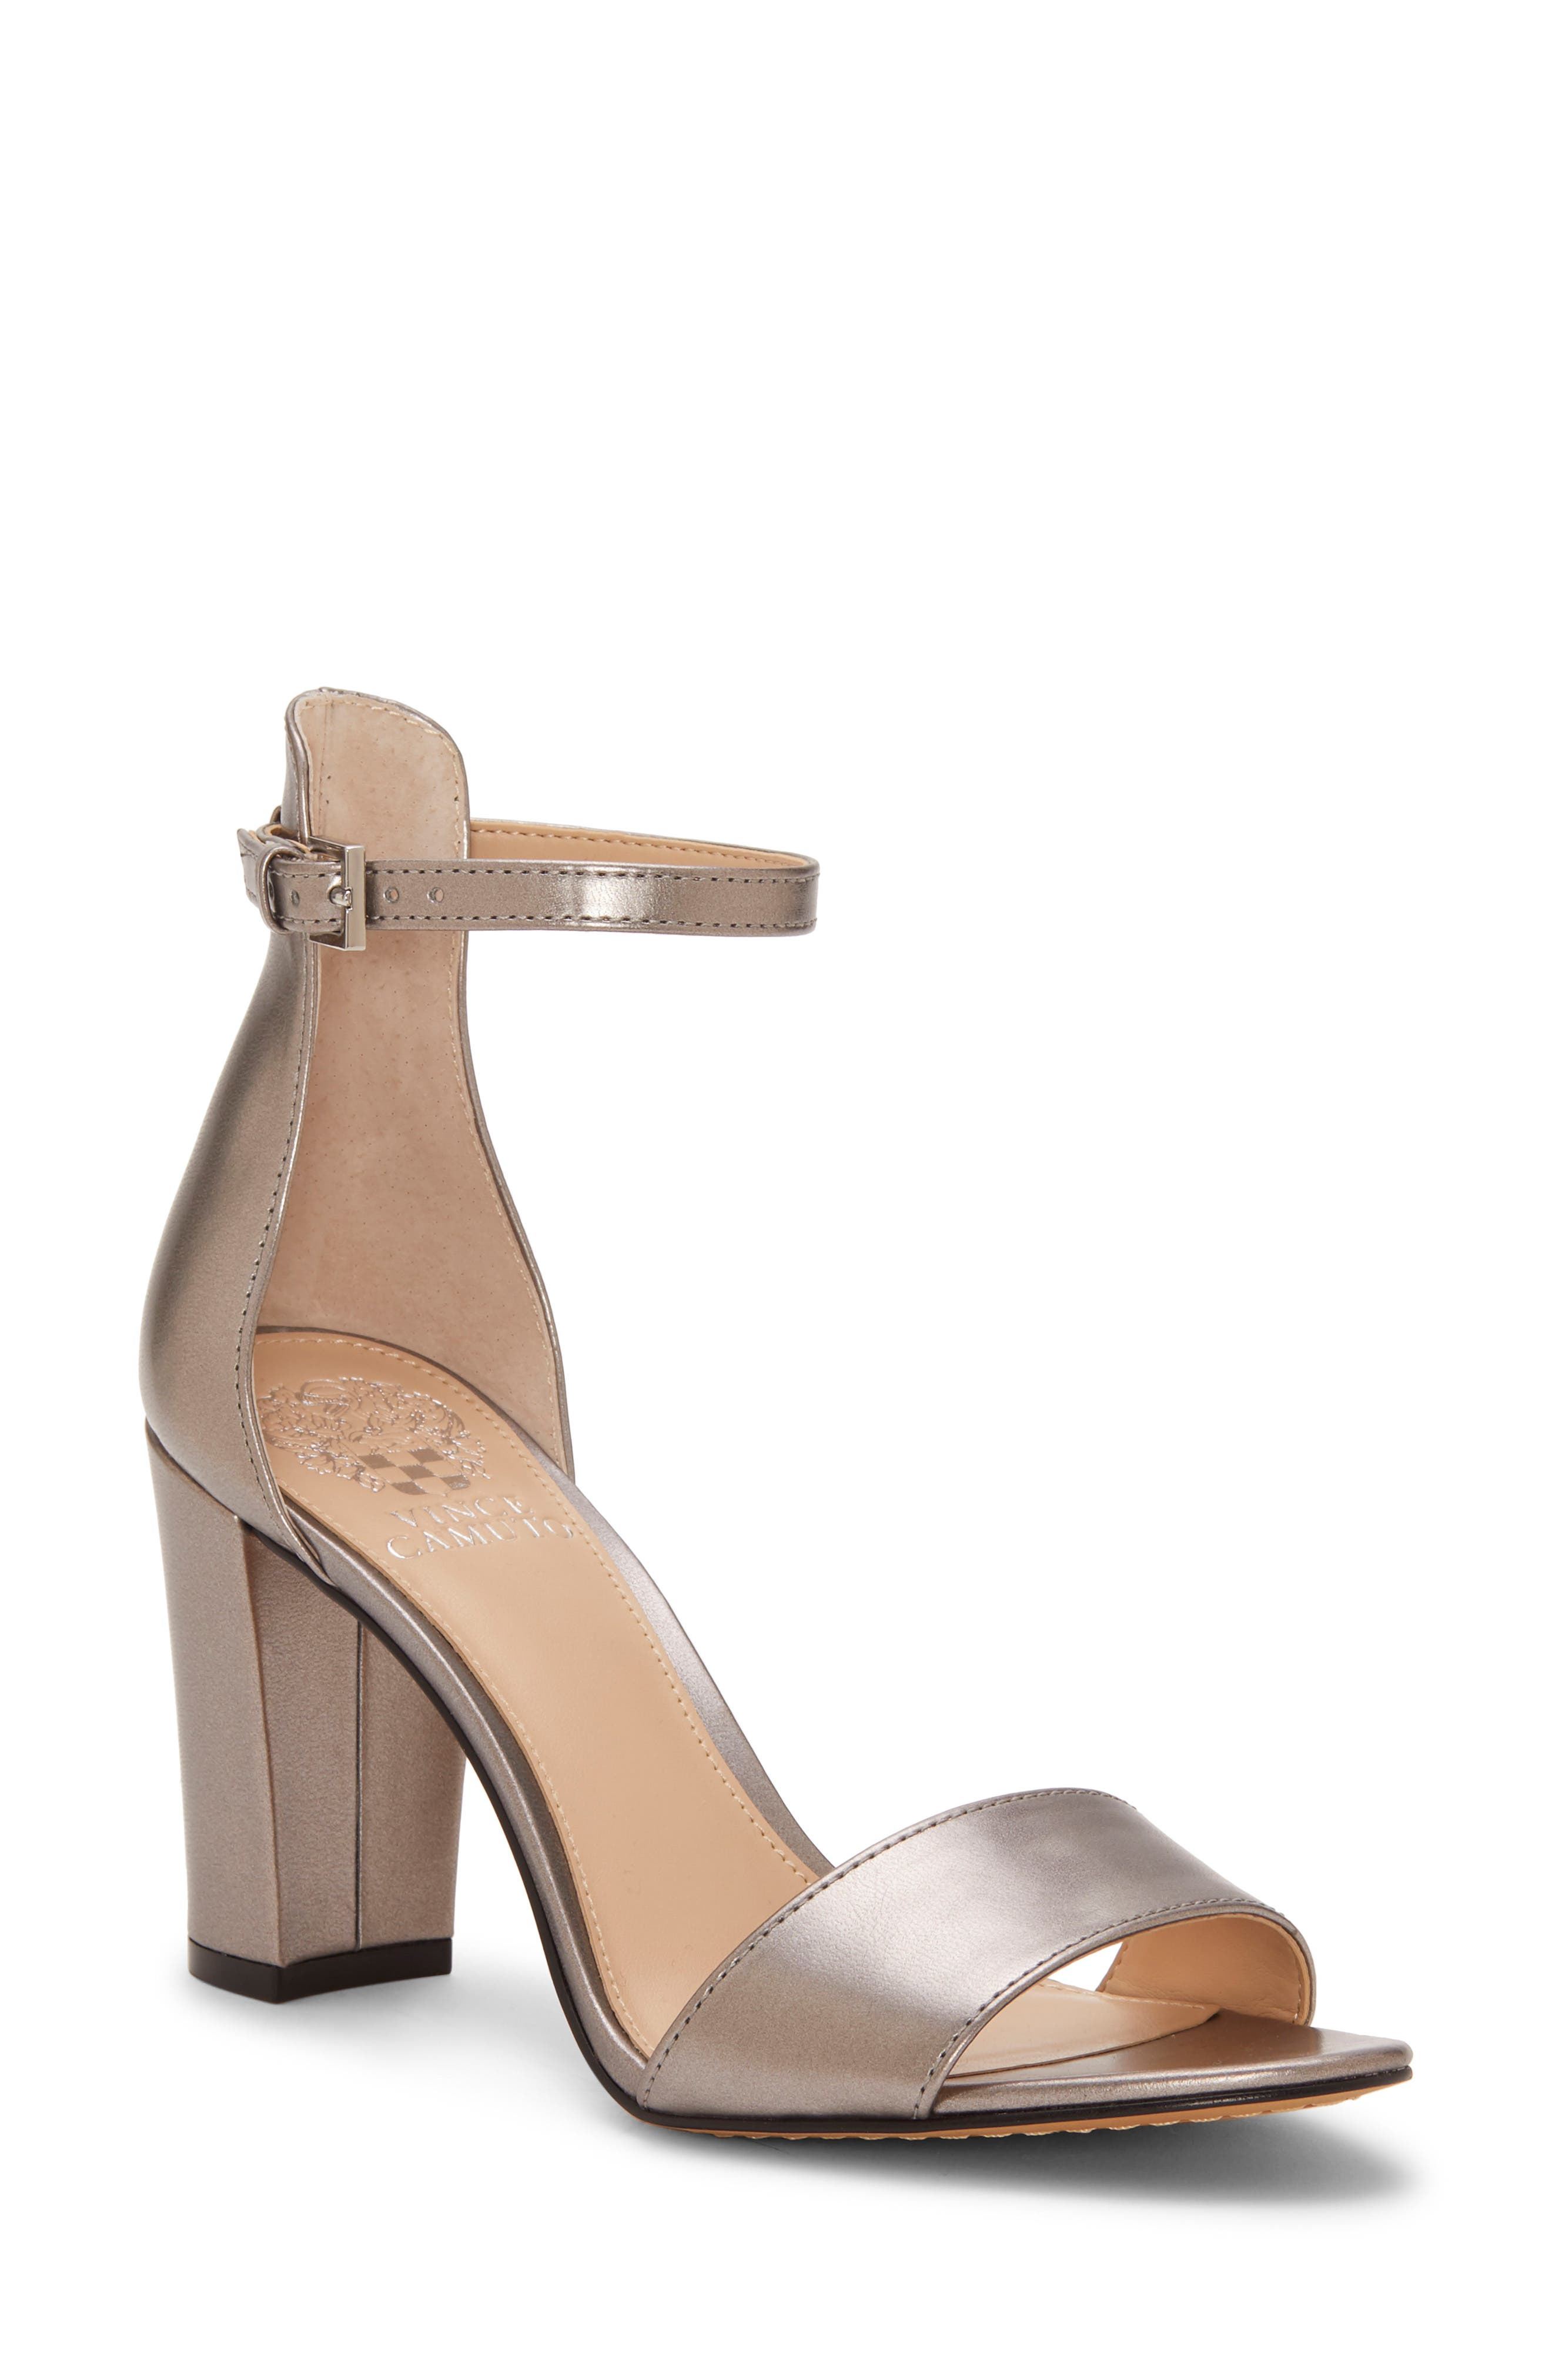 VINCE CAMUTO Corlina Ankle Strap Sandal, Main, color, METAL GREY